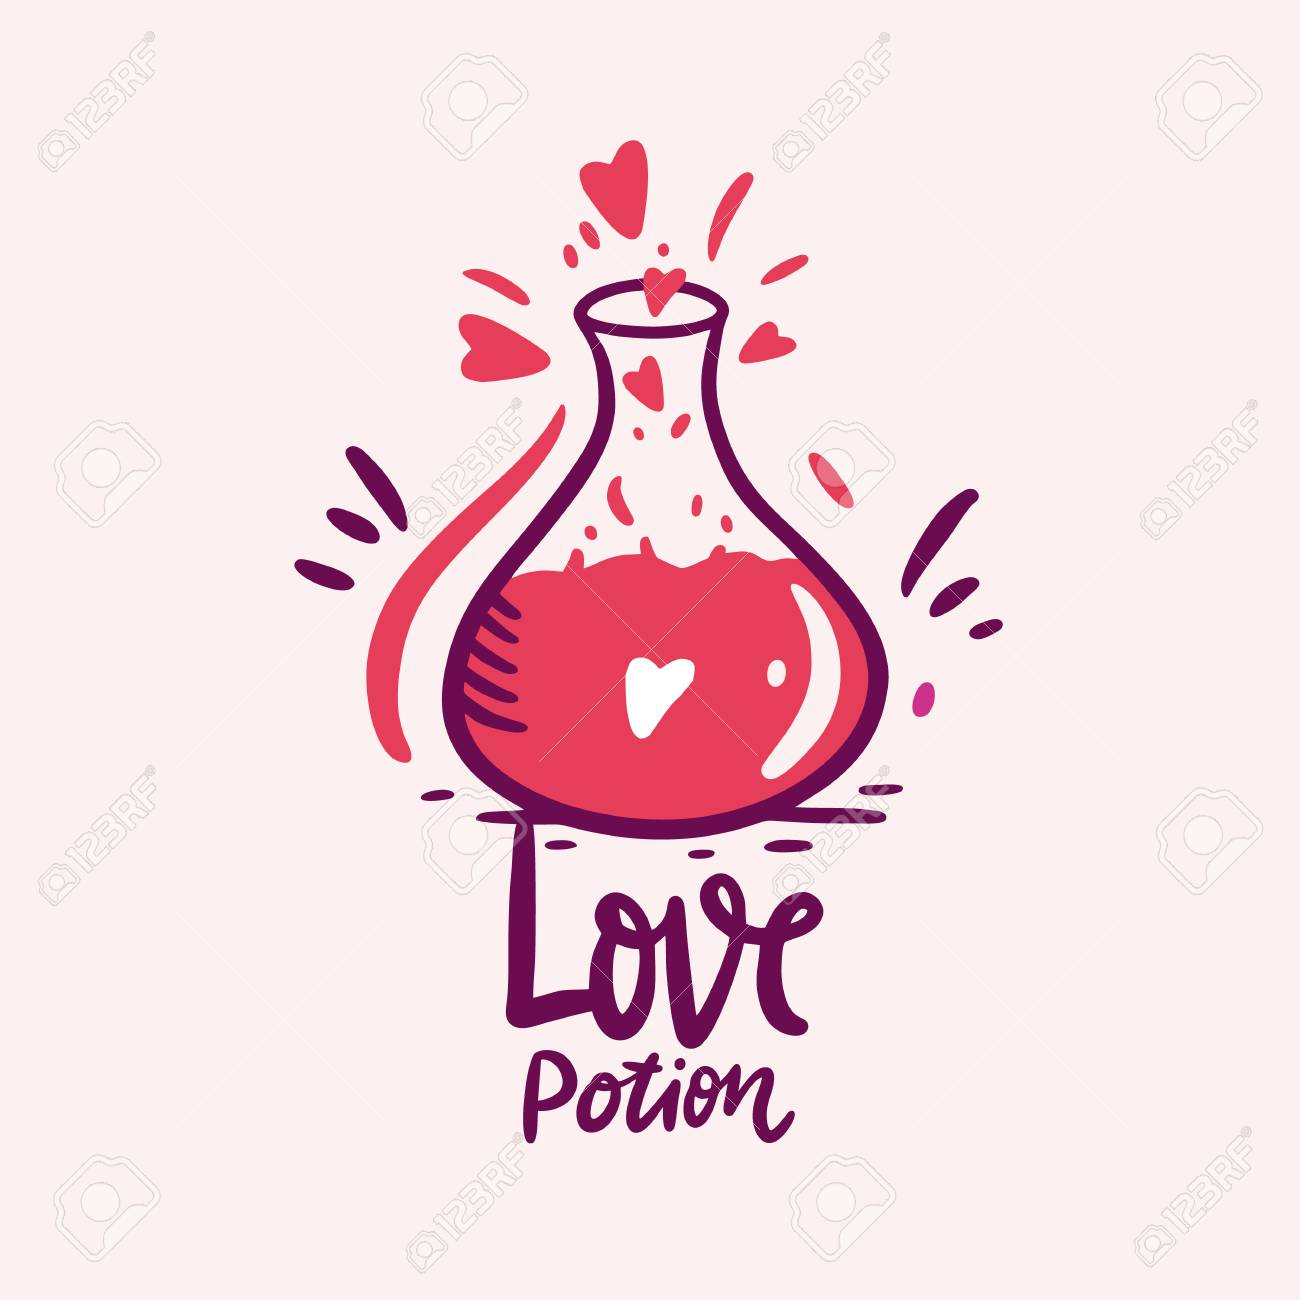 Love Potion And Flask Of Love Drink. Hand Drawn Vector Illustration..  Royalty Free Cliparts, Vectors, And Stock Illustration. Image 116739187.